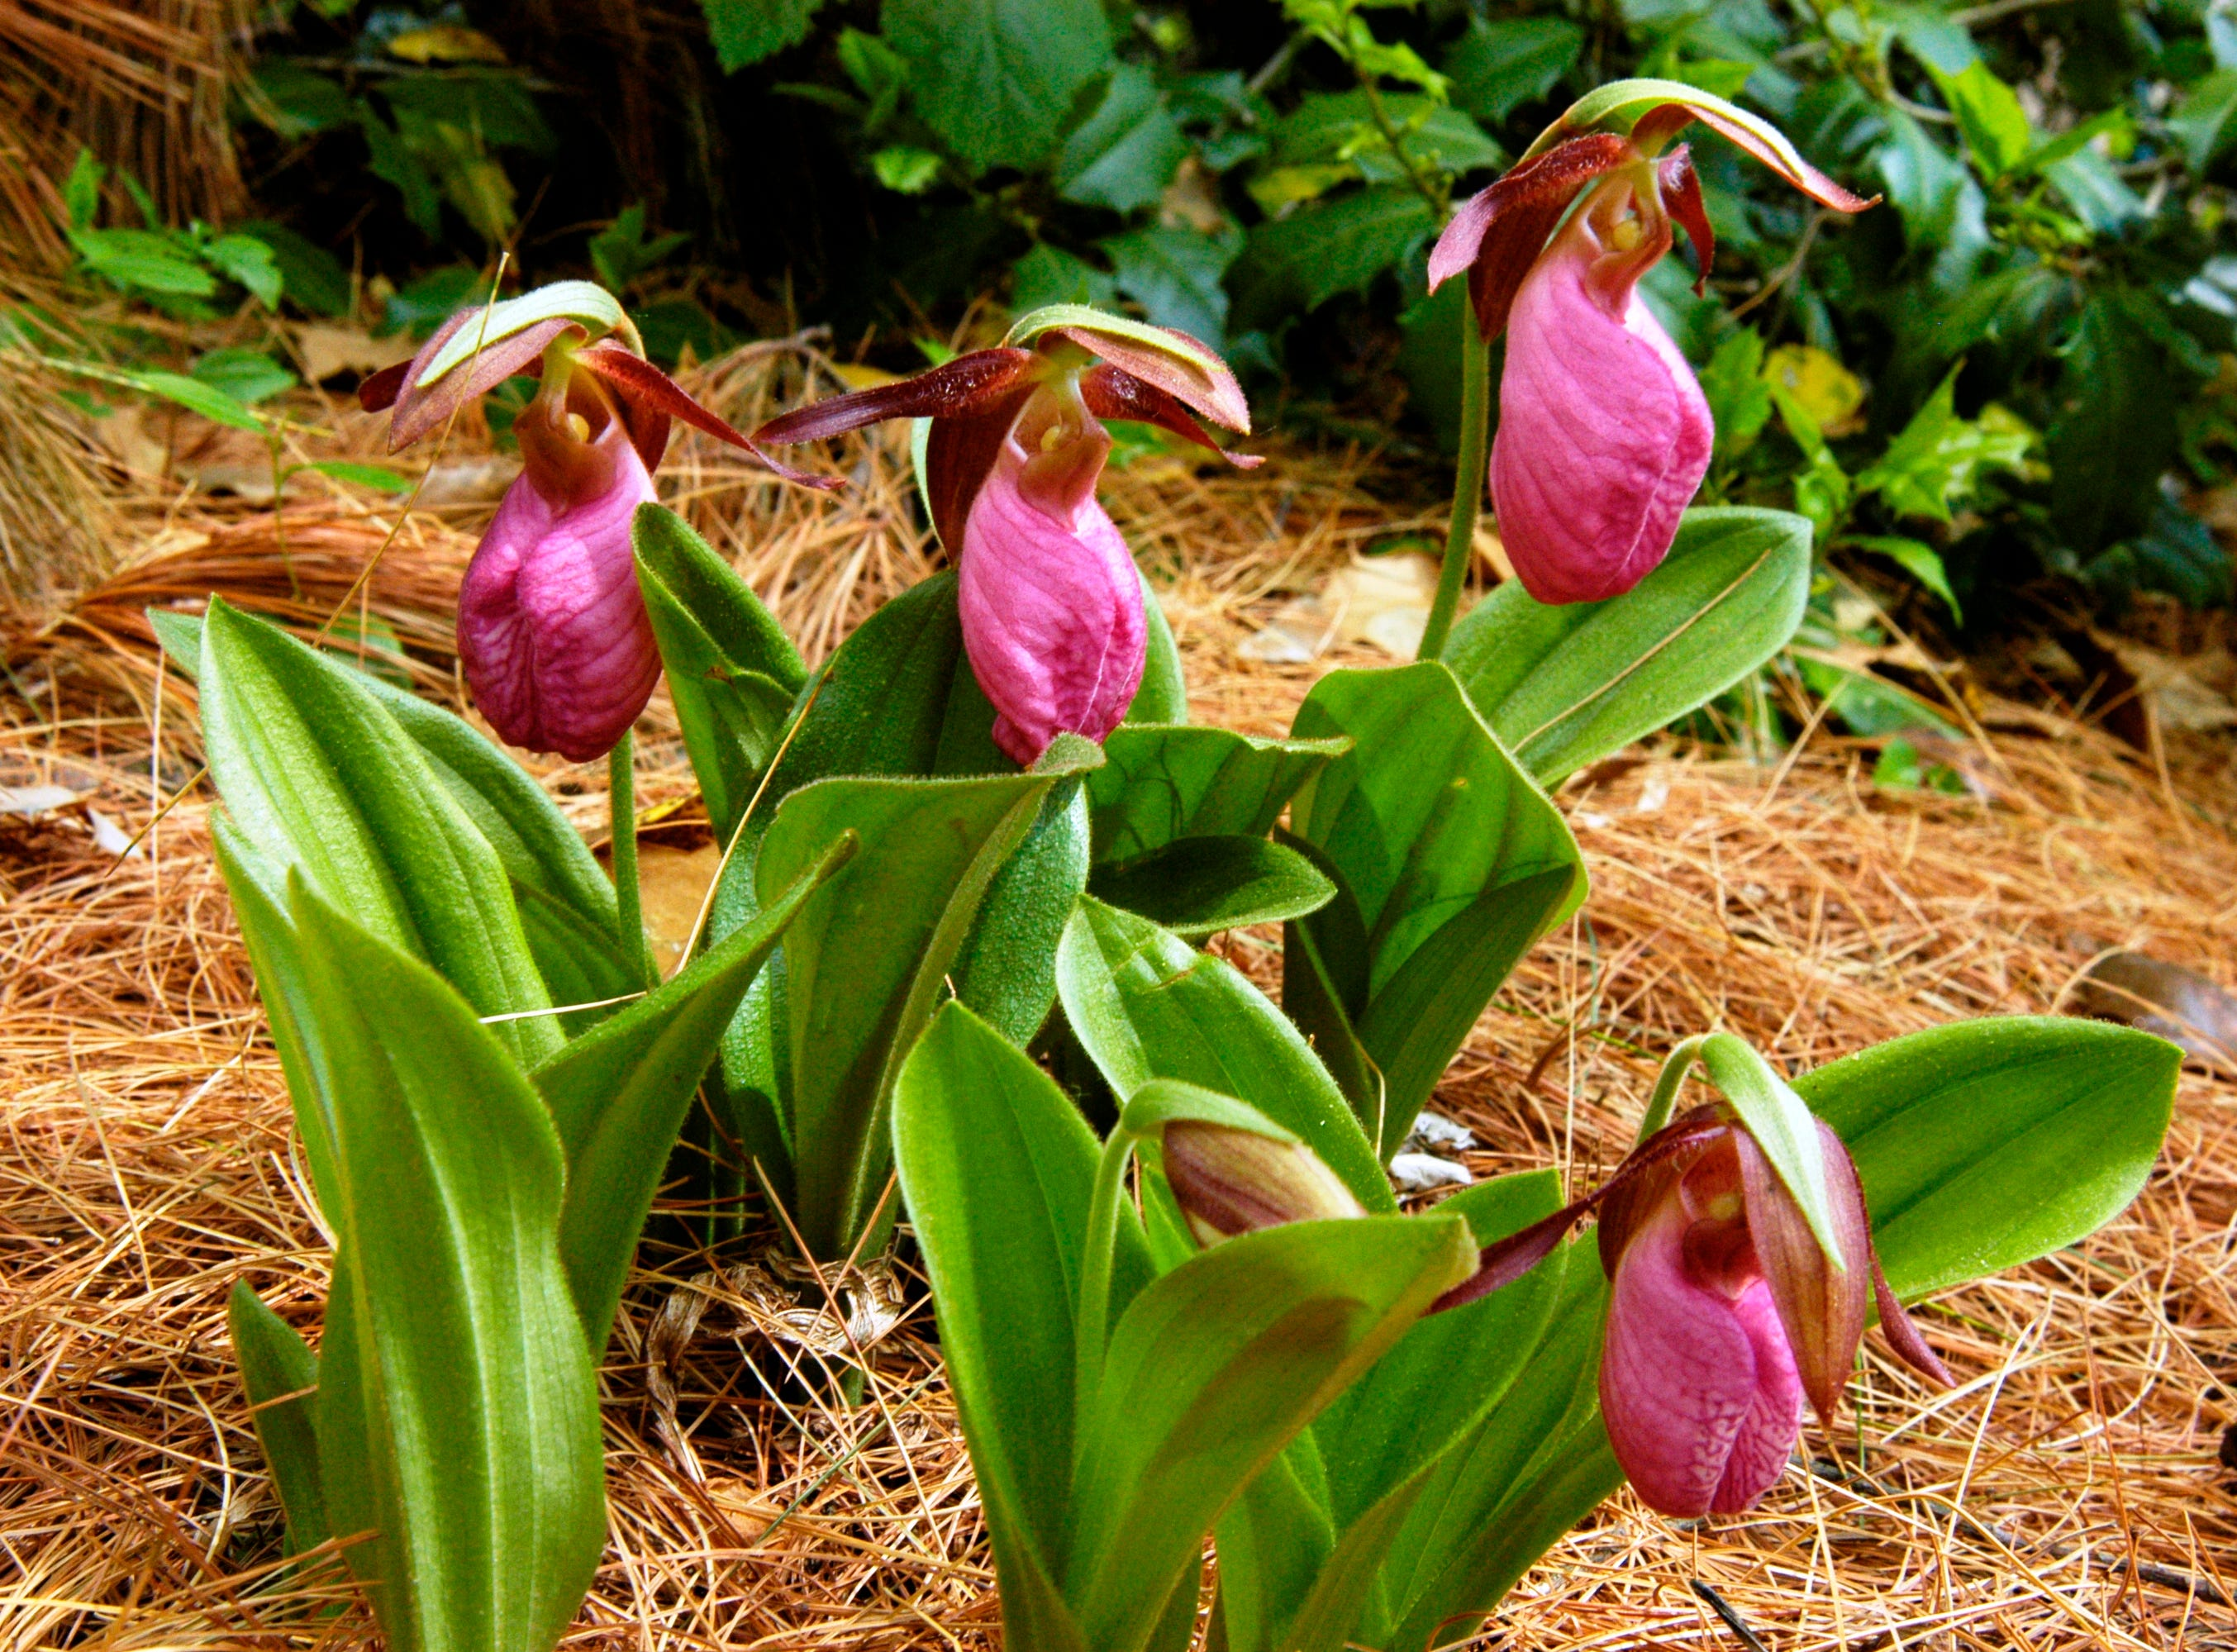 The Cypripedium acaule, commonly known as the pink lady's slipper orchid, is native to Delaware.